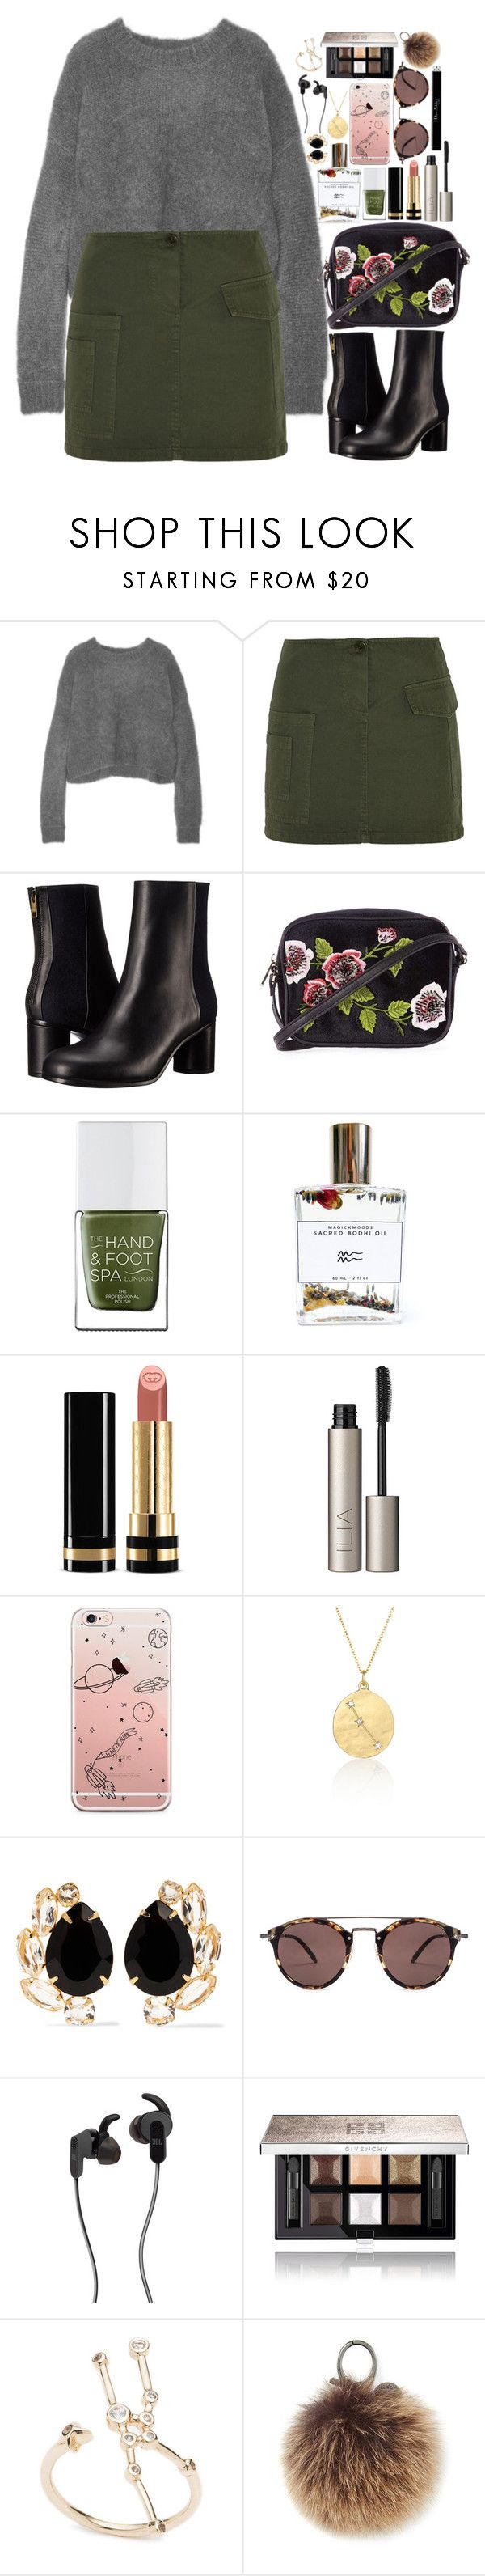 """""""❤"""" by polinachaban ❤ liked on Polyvore featuring 3.1 Phillip Lim, Band of Outsiders, Paul Smith, Topshop, The Hand & Foot Spa, Bodhi, Gucci, Ilia, BROOKE GREGSON and Bounkit"""